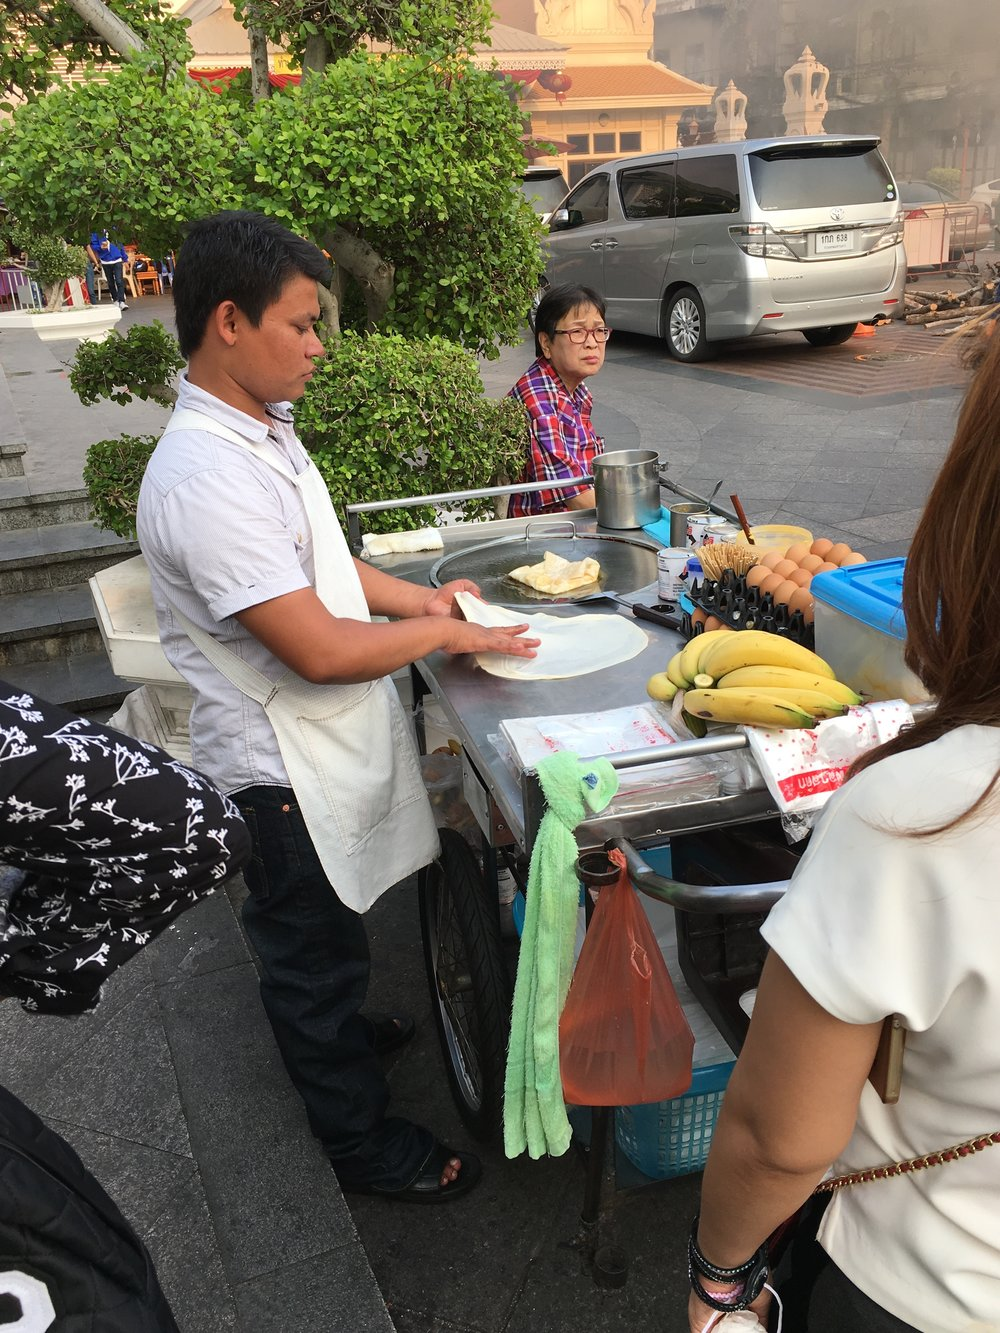 Street food: a crepe, it looked like, but filled with sliced banana and egg